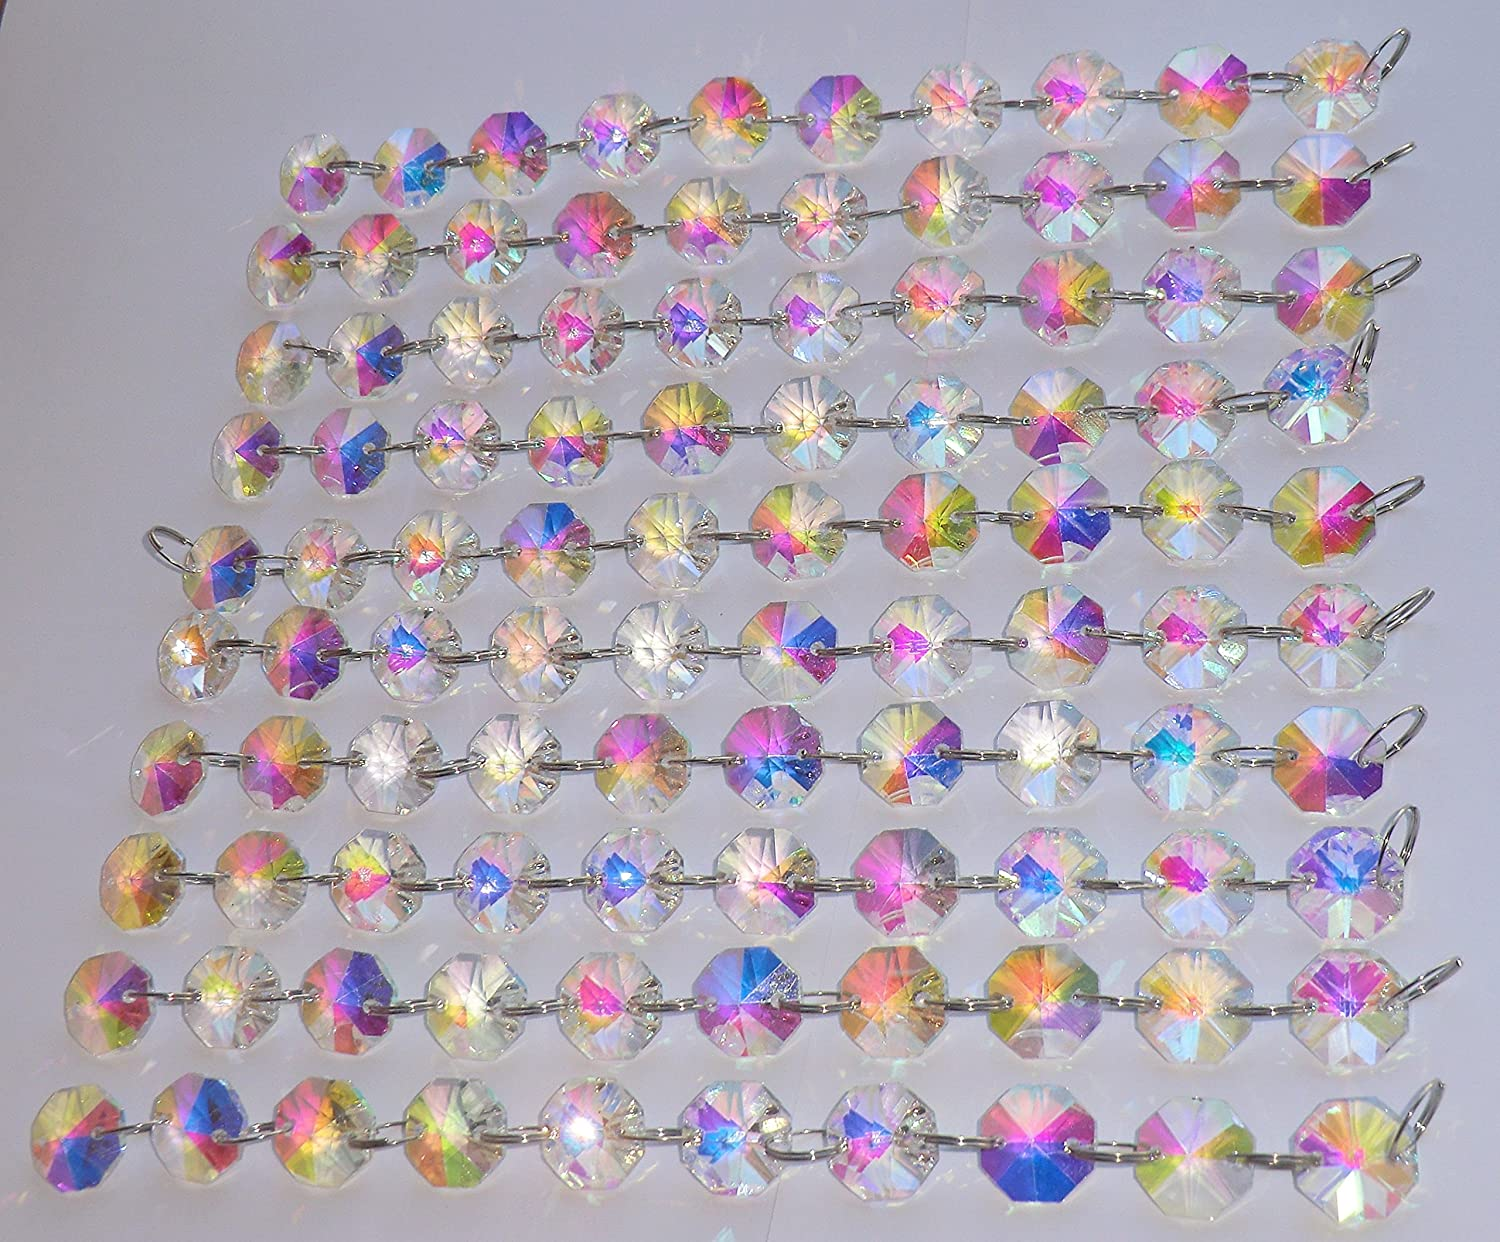 100 Clear Transparent 14mm Octagon Chandelier Drops Light Parts Cut Glass Crystals Droplets Beads Christmas Tree Ornaments Wedding Wishing Decorations Garlands Sun Bead Chains